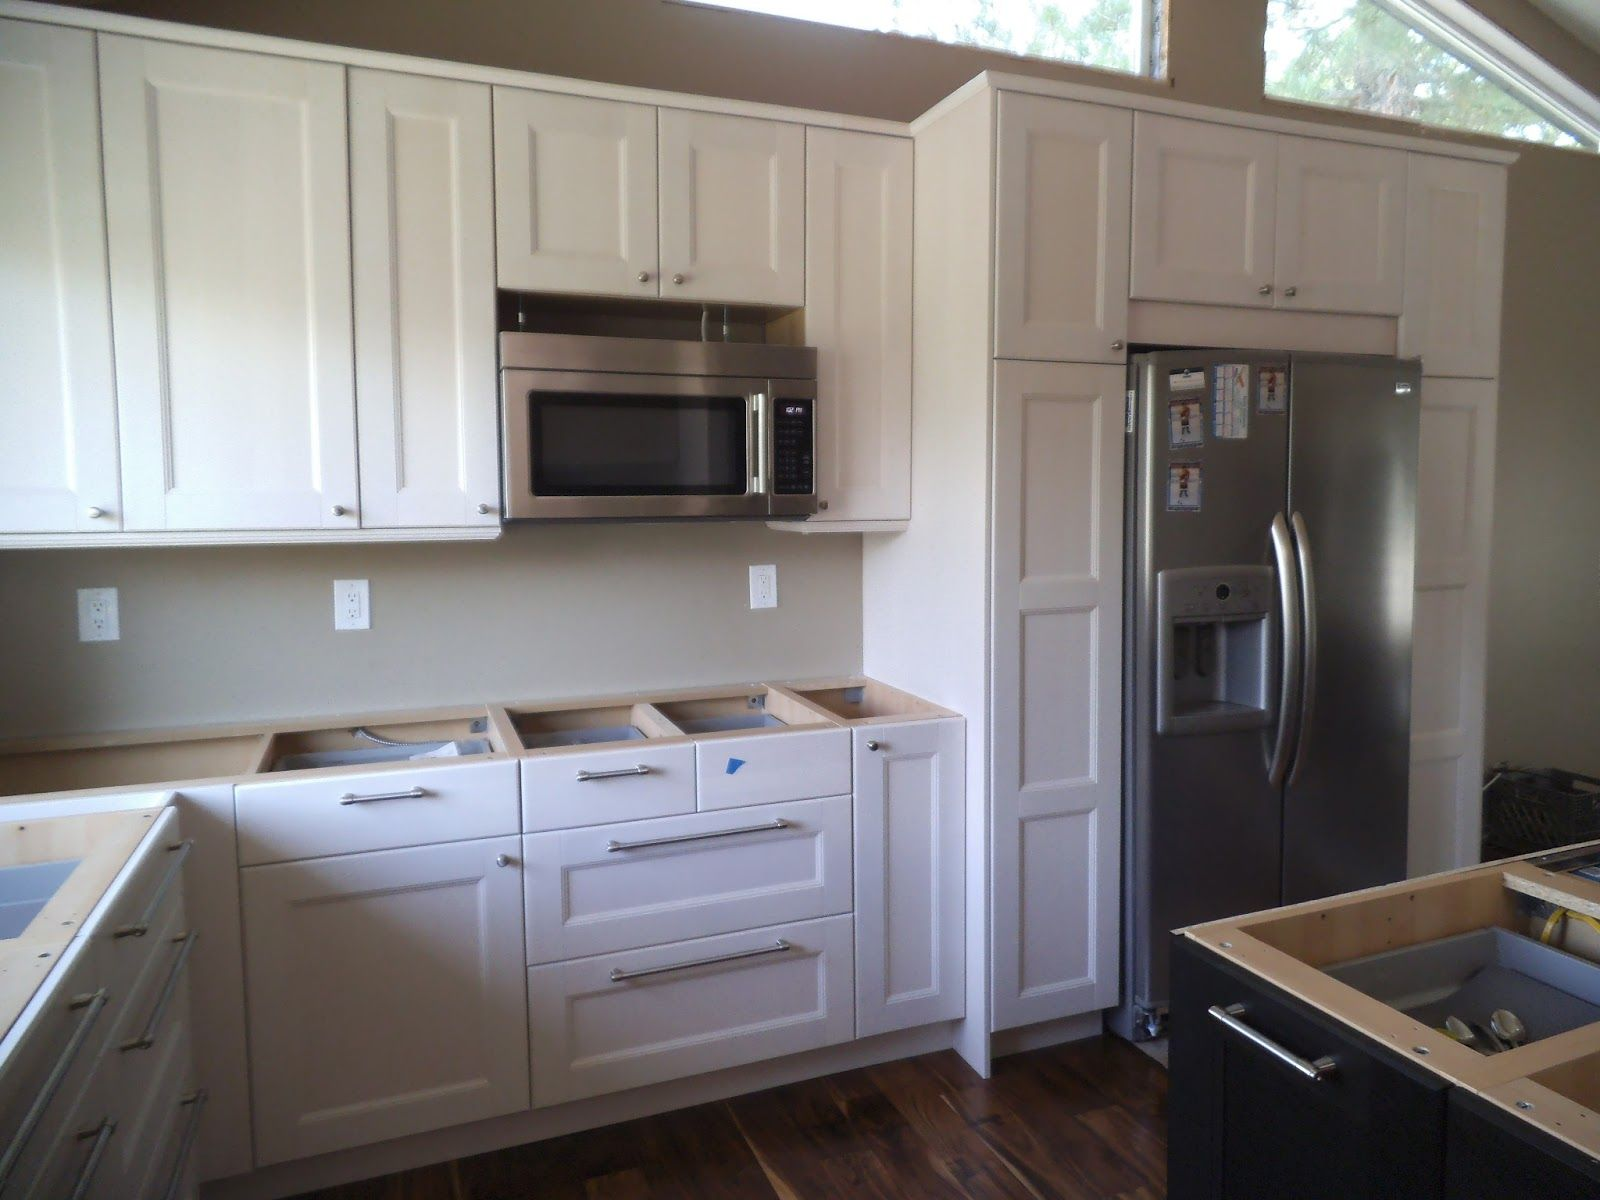 Stacie S Stuff My 2 Cents Worth White Ikea Kitchen Ikea Kitchen Cabinets Inexpensive Kitchen Cabinets